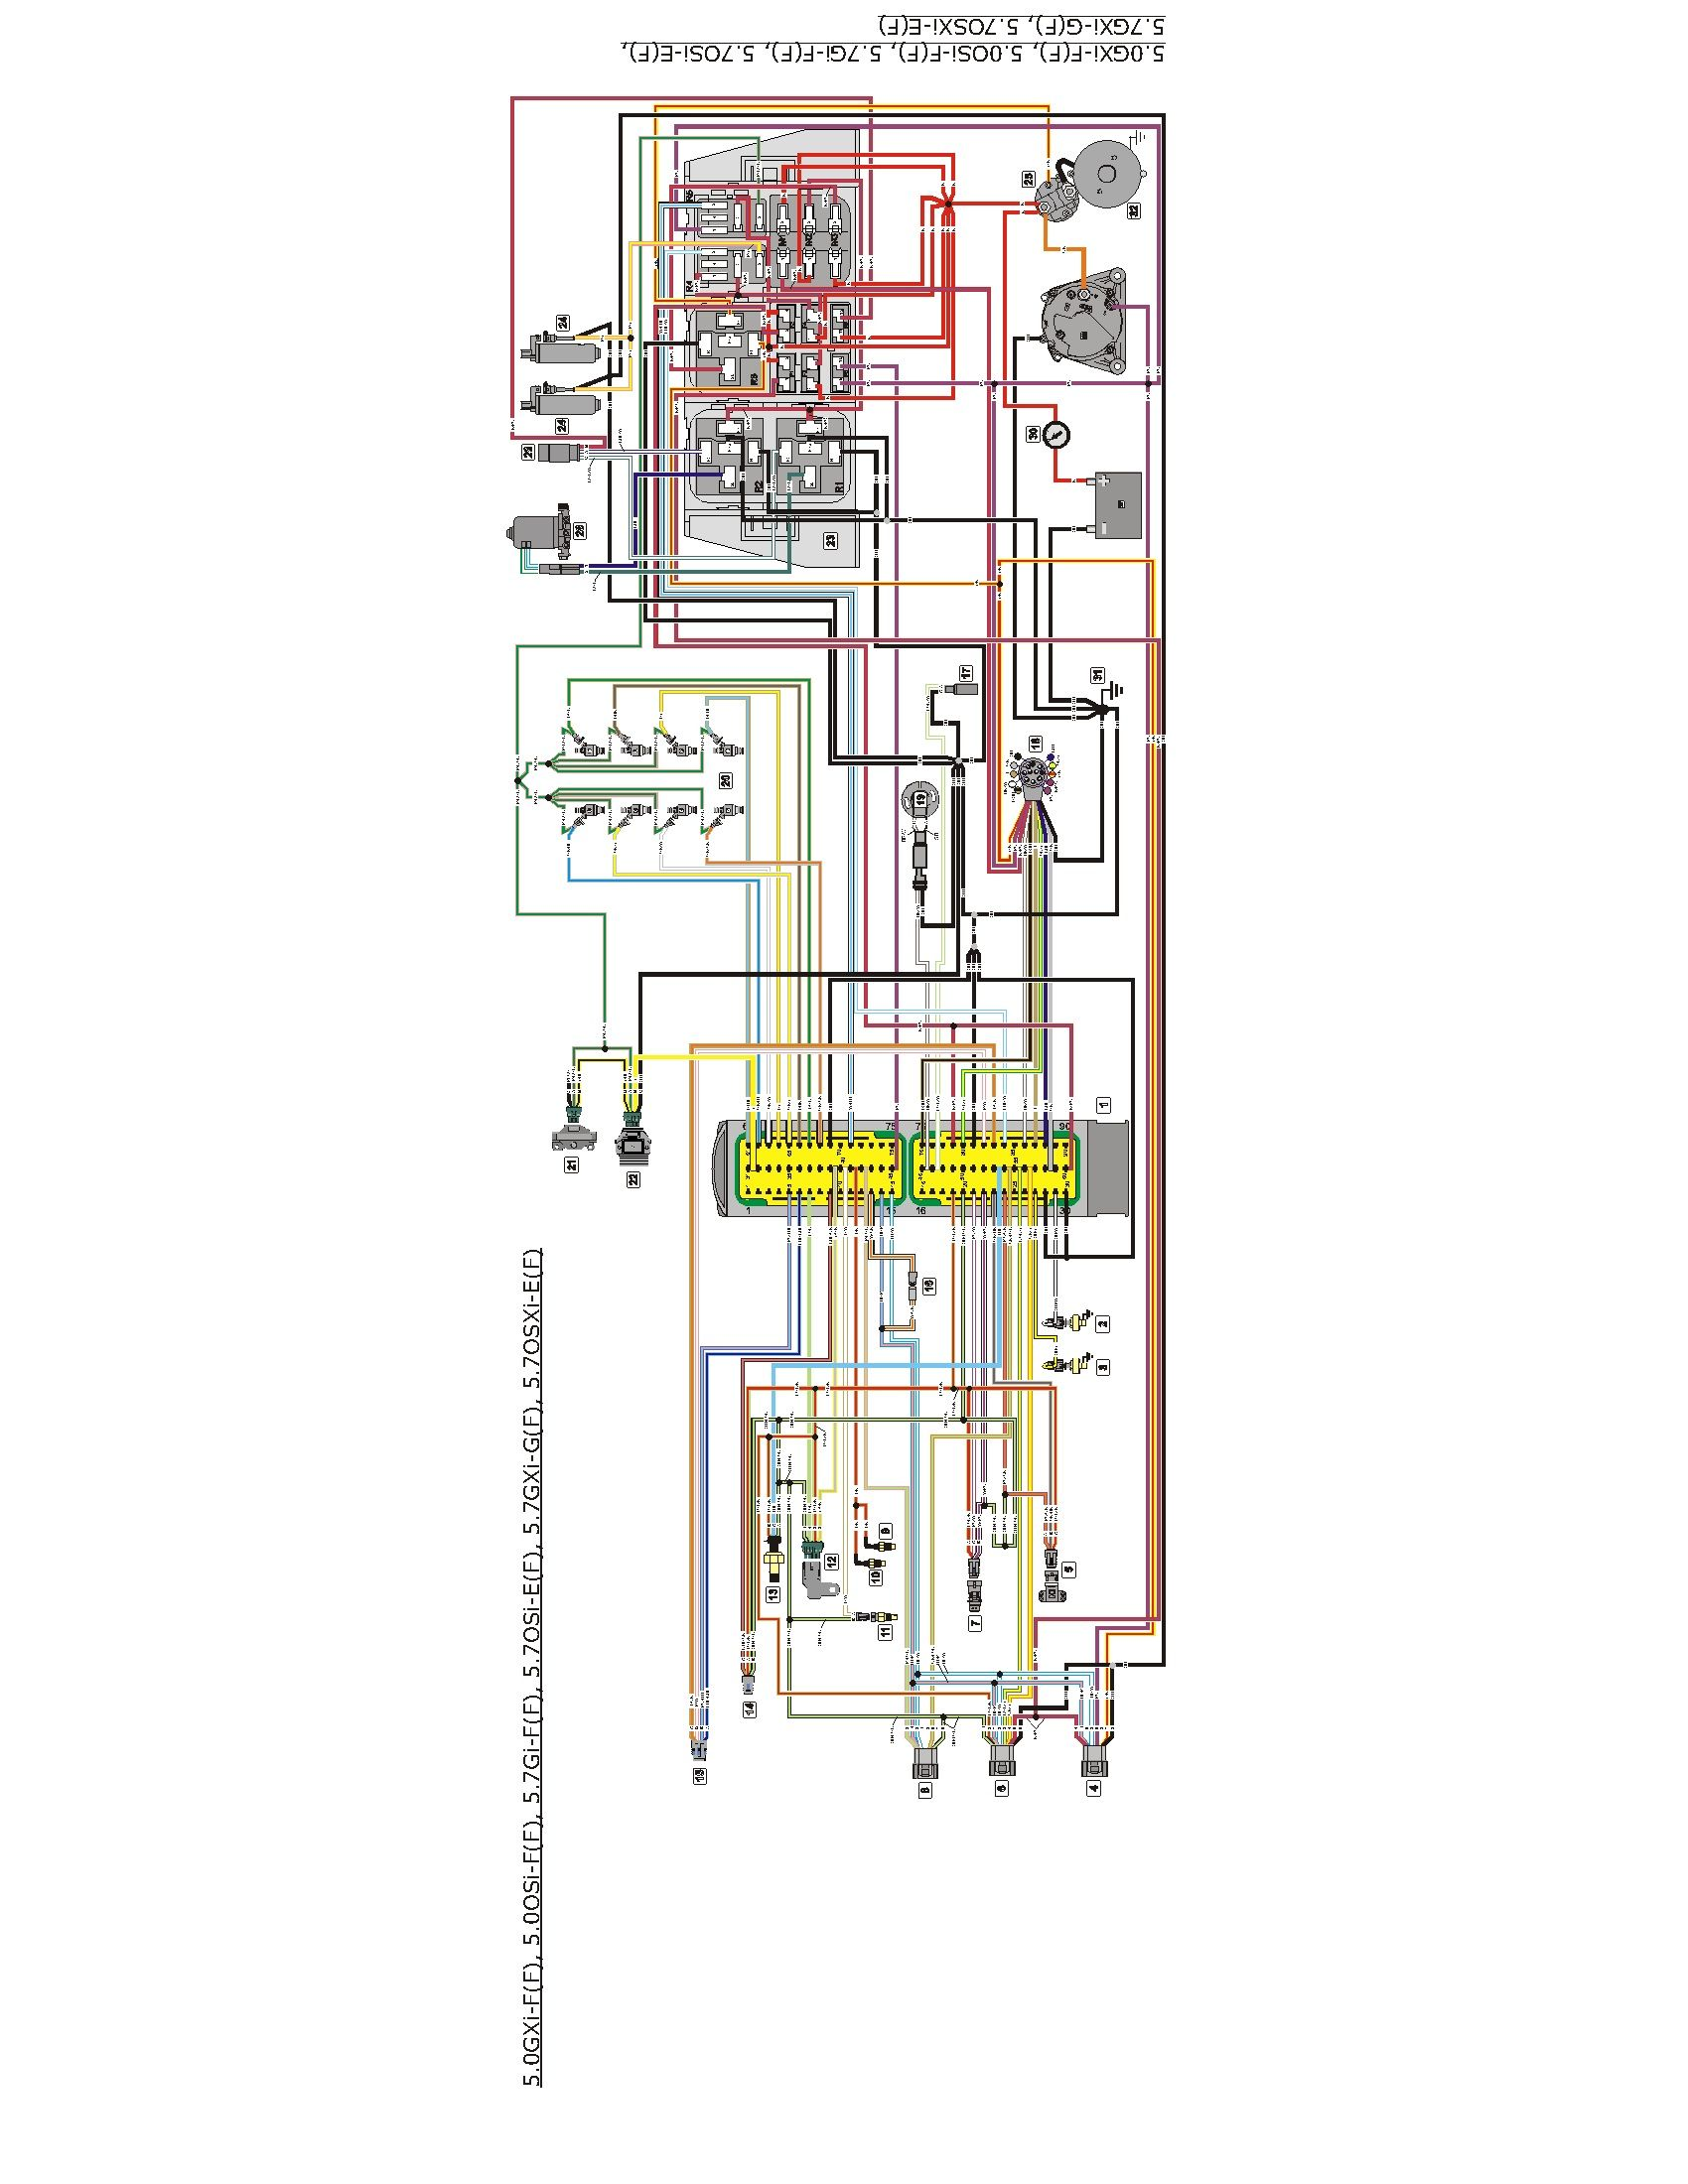 38e0106861e0fe47e508530985b32839 volvo penta 5 7 engine wiring diagram yate pinterest volvo volvo penta wiring harness diagram at n-0.co